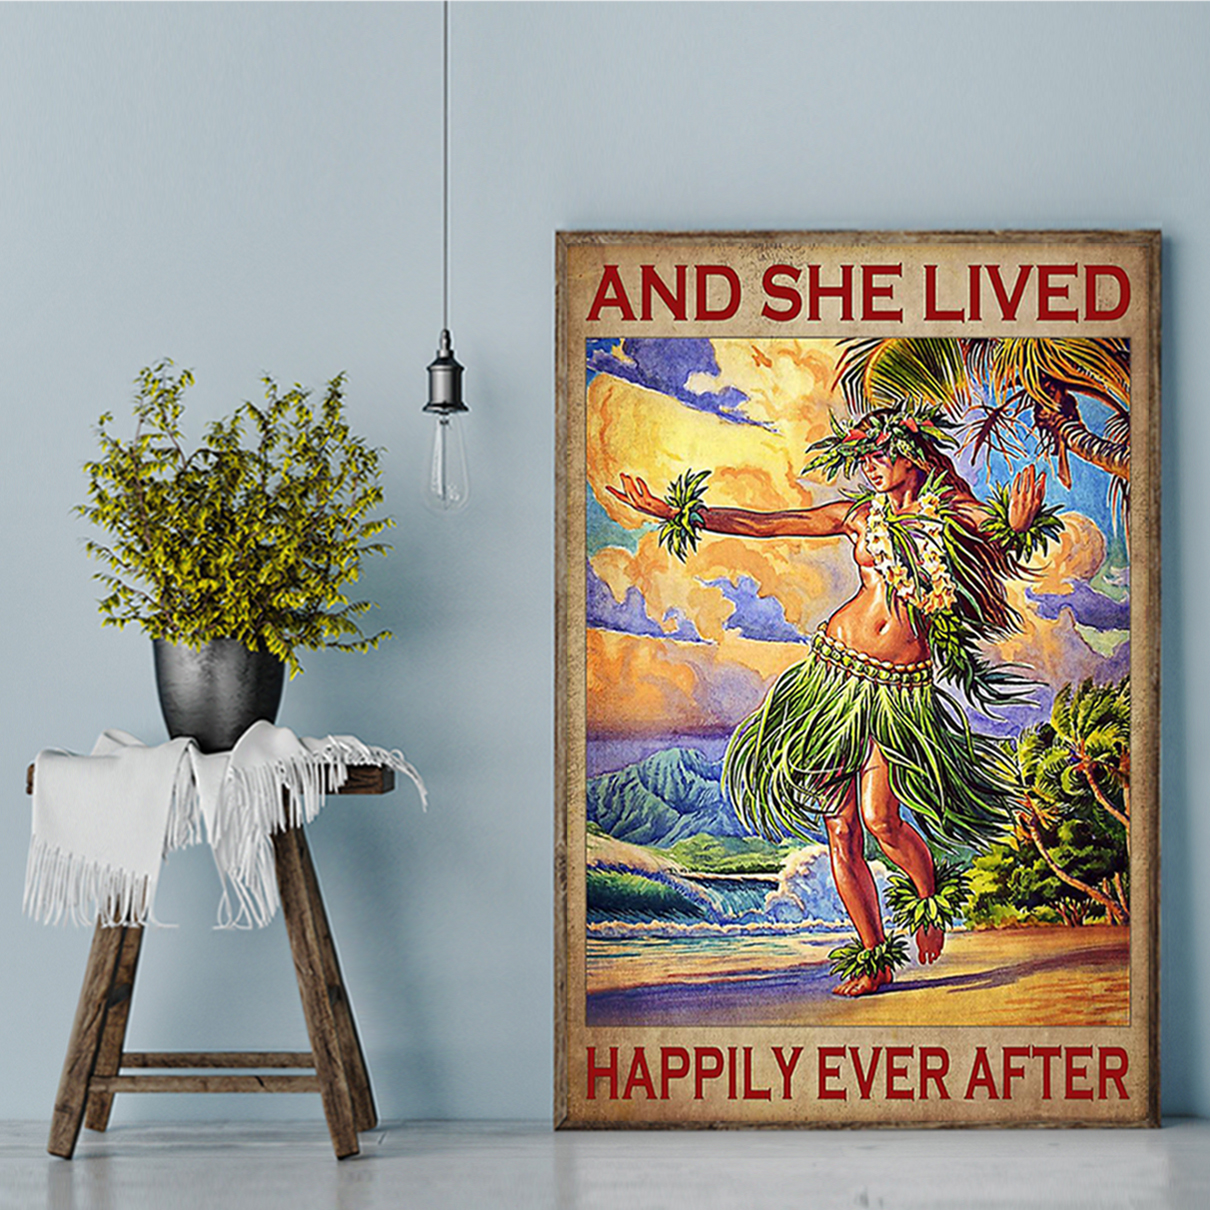 Hawaii girl and she lived happily ever after poster A3